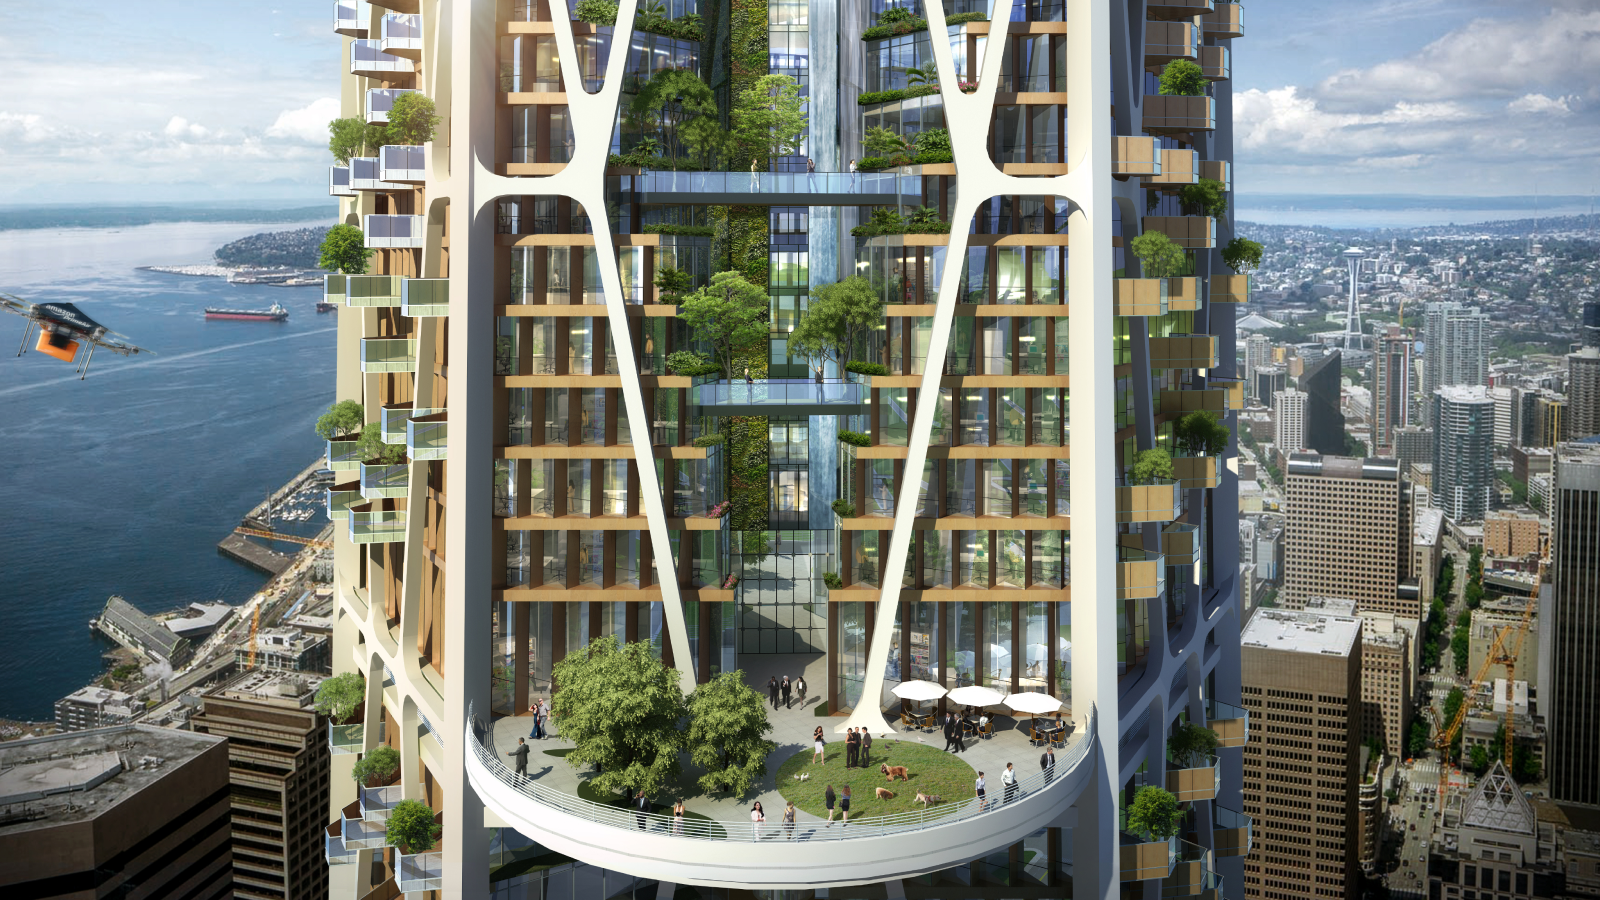 Rendering showing mass timber and vertical gardens